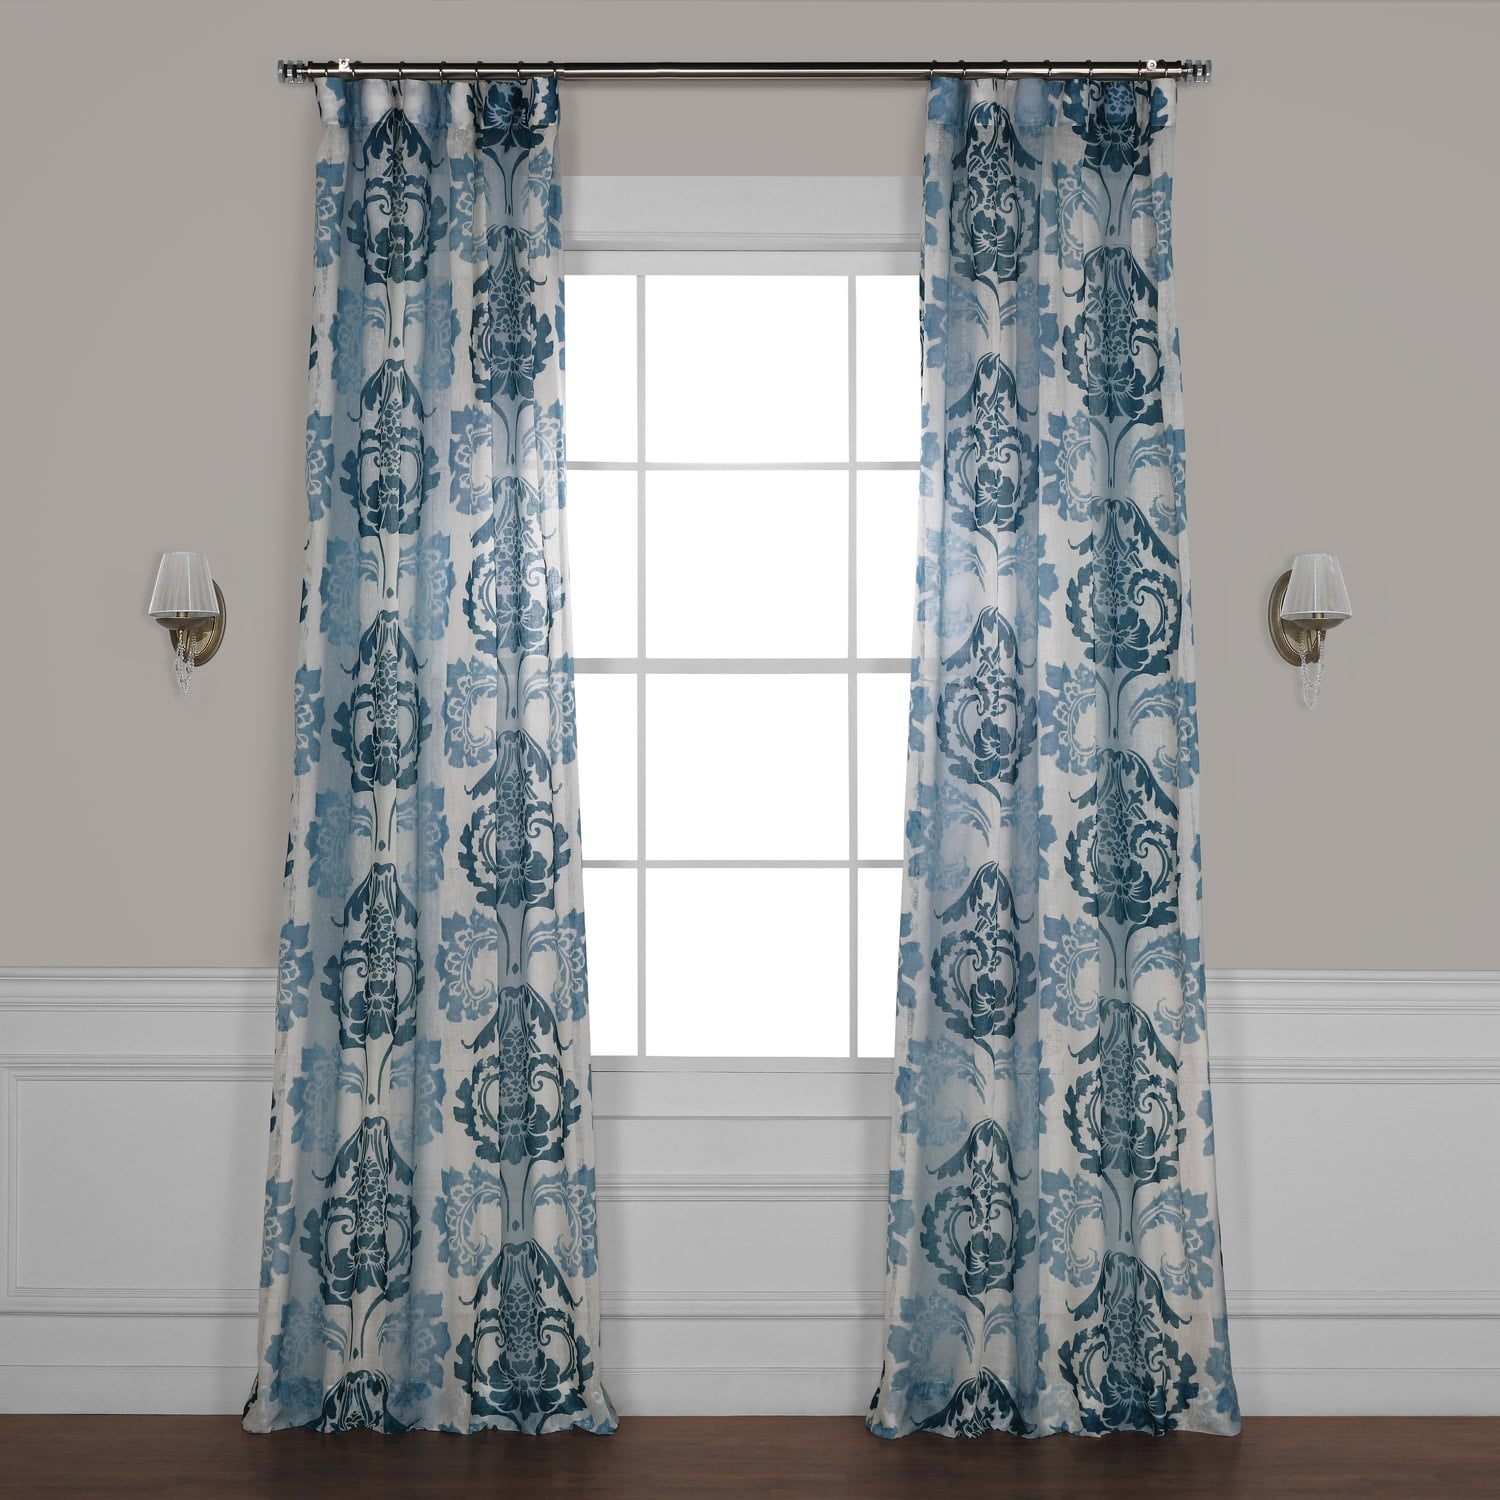 Damascus Teal Printed Faux Linen Sheer Curtain